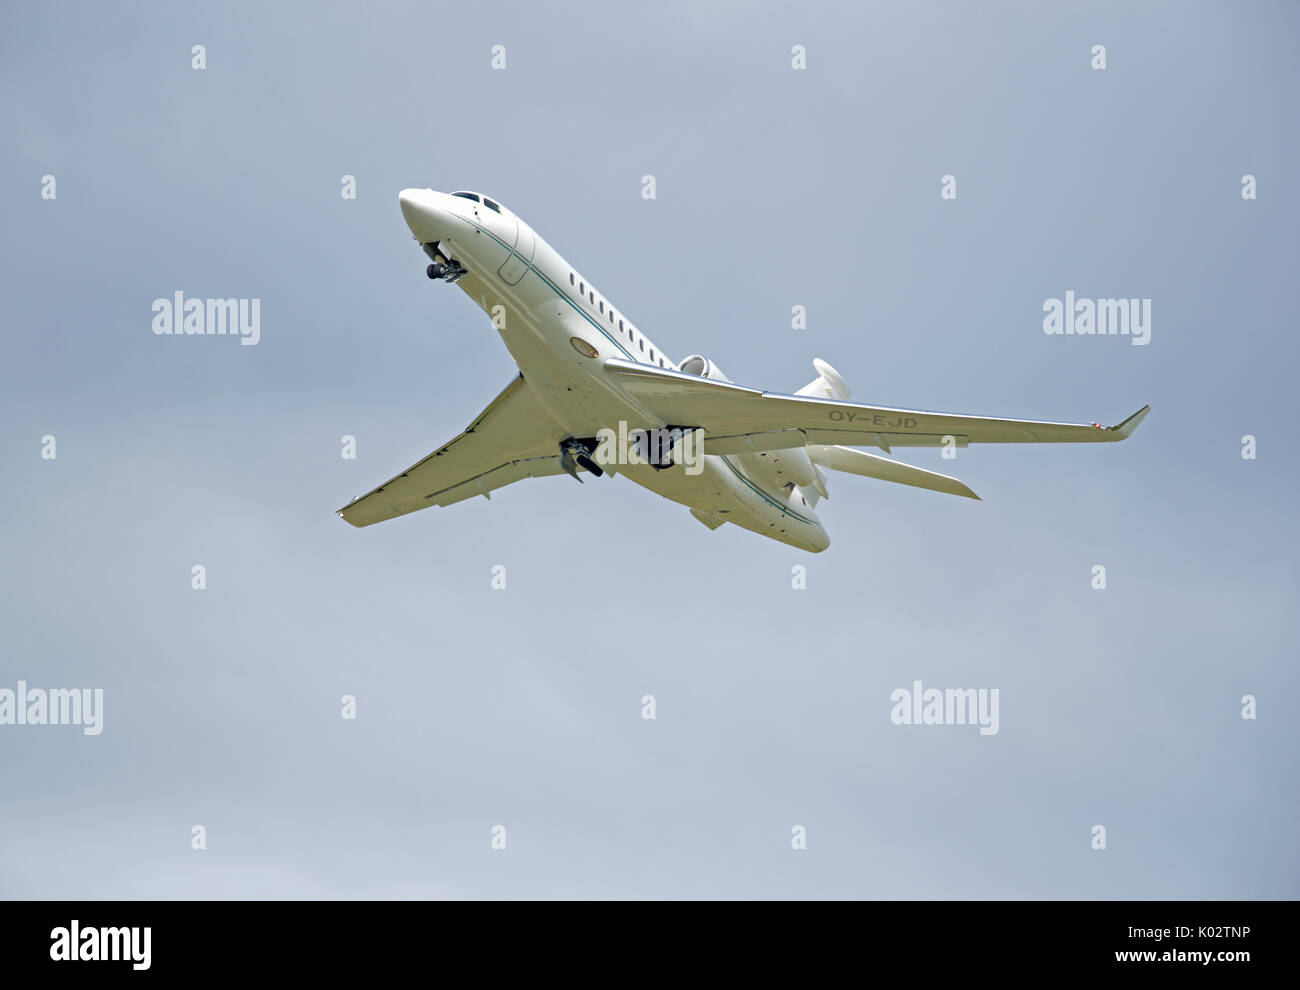 Falcon 7X from Air Alsie Fleet departing from Inverness Dalcross Airport in the Scottish Highlands UK. Stock Photo